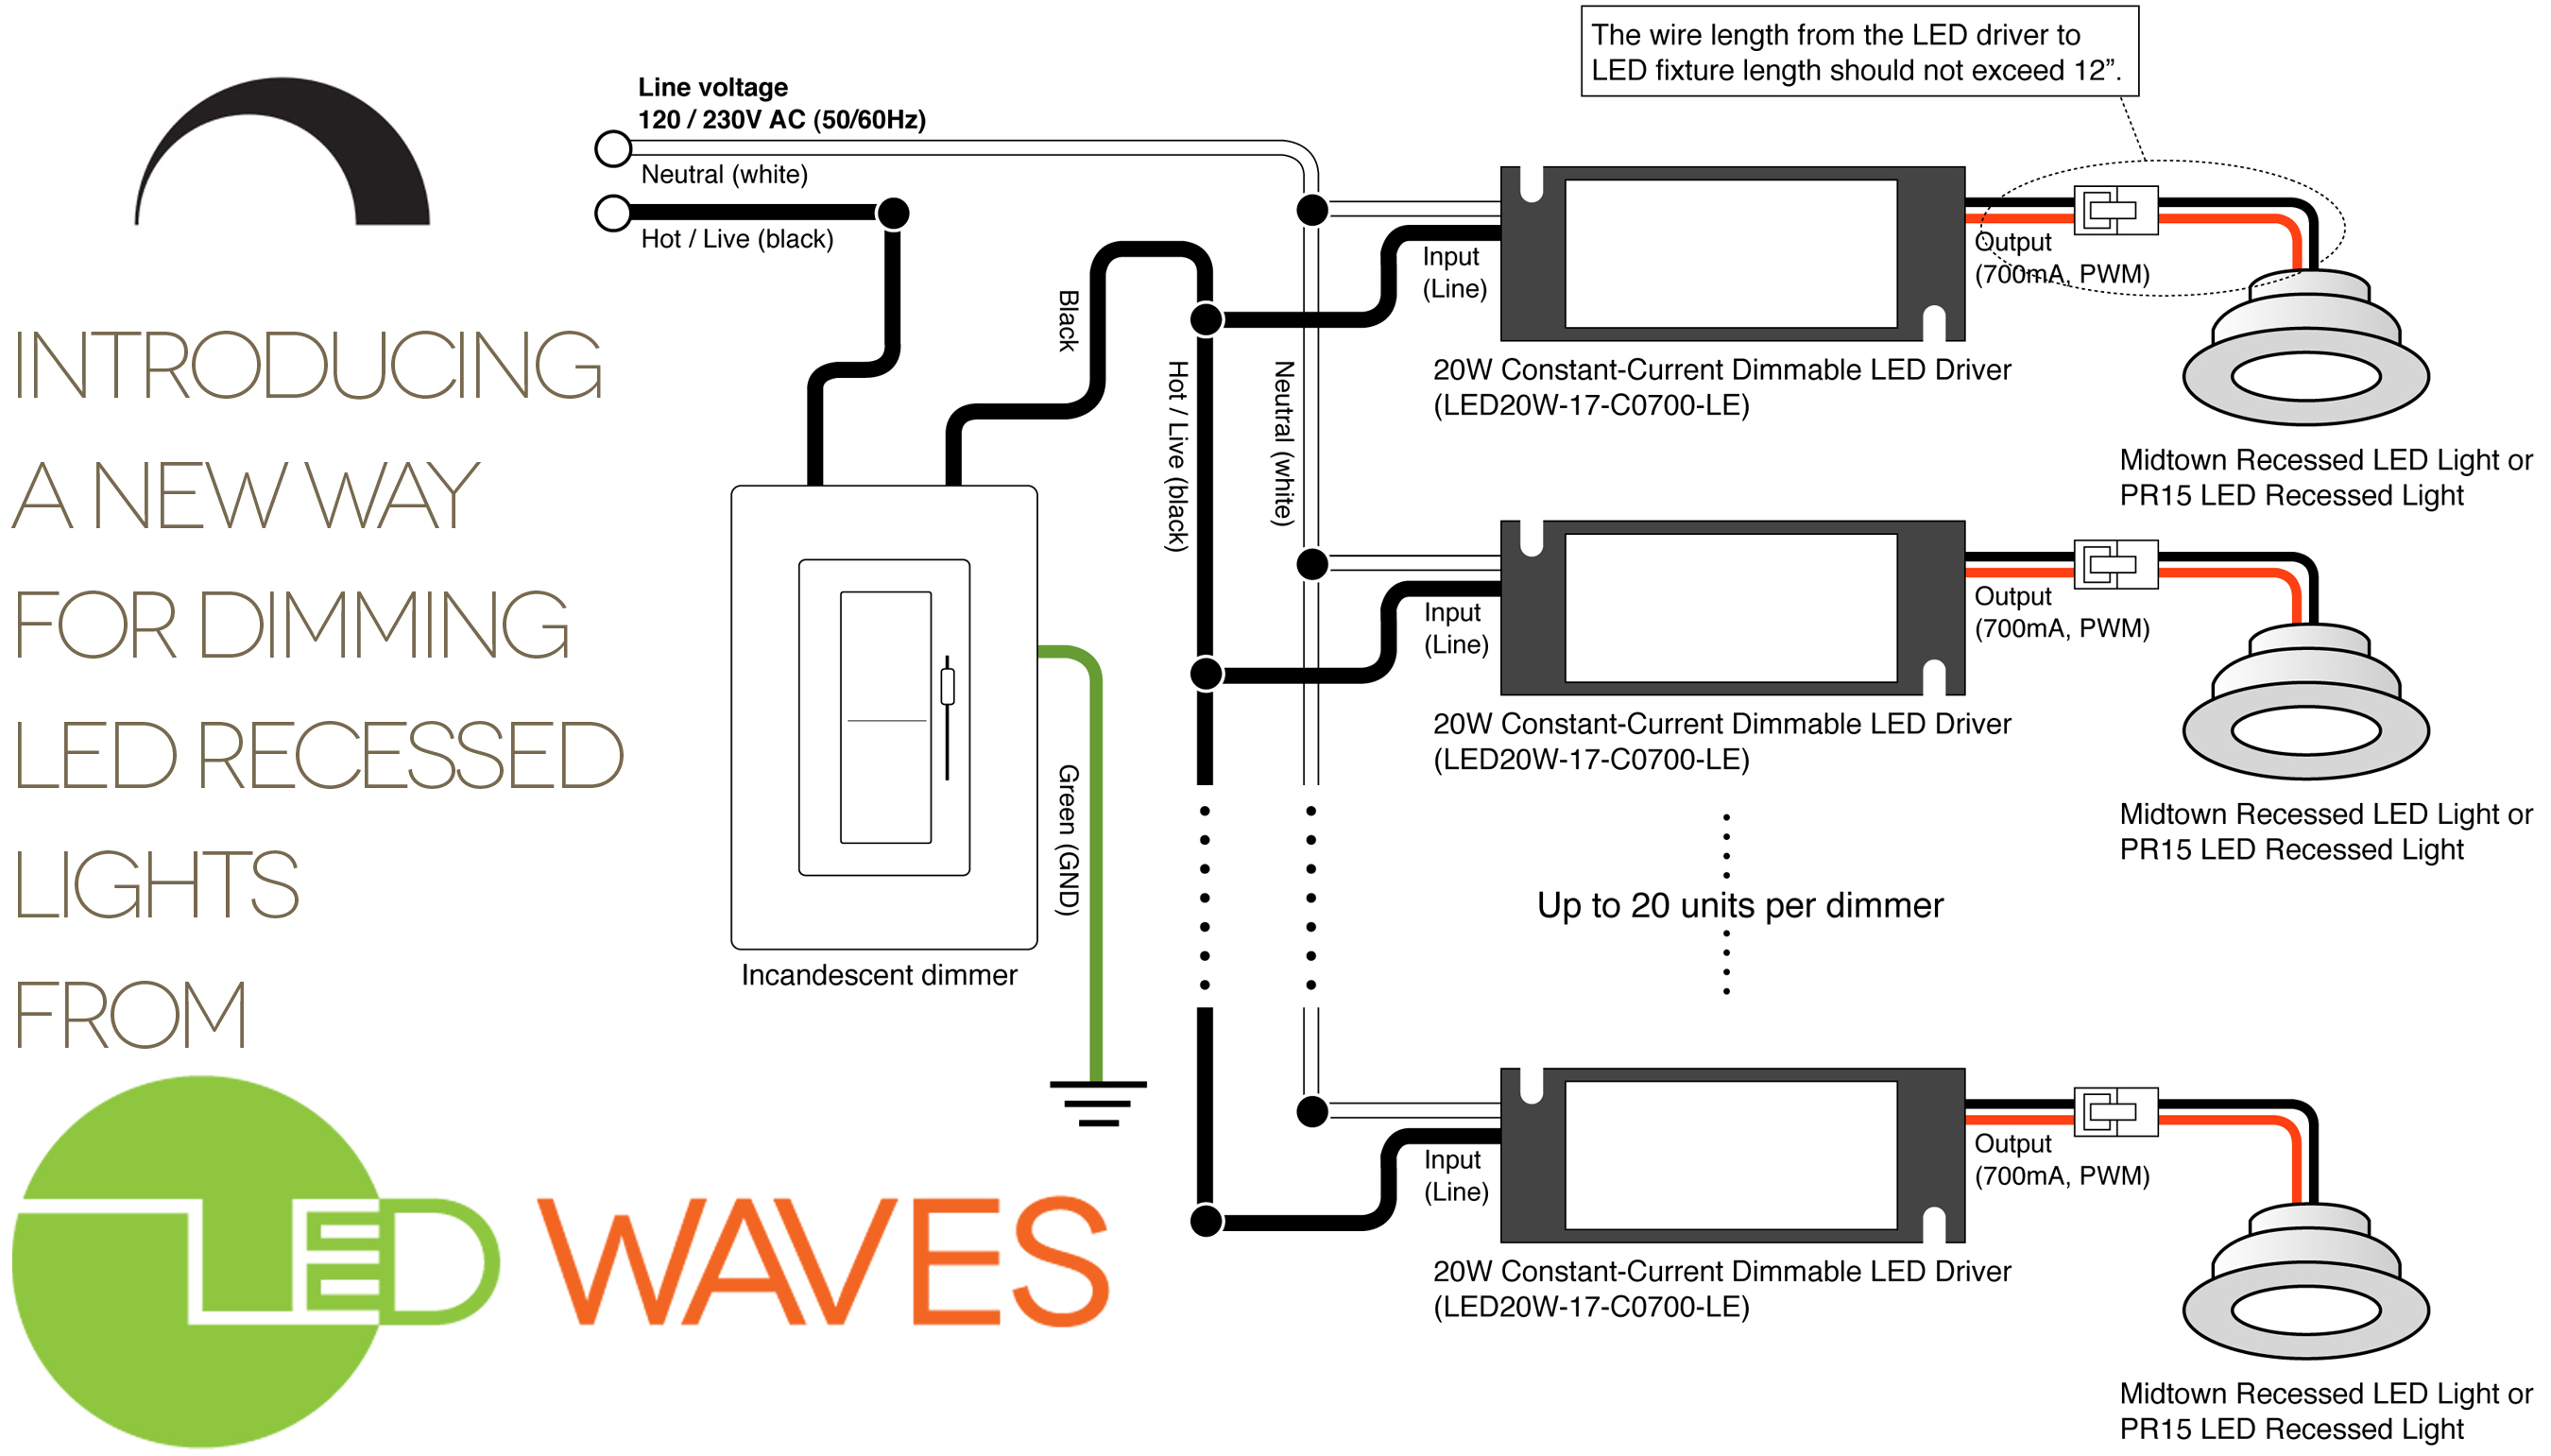 Wiring diagram for dimmable LED Recessed Lights led waves redesigns dimmable led recessed lights wiring diagram for led downlights at bakdesigns.co